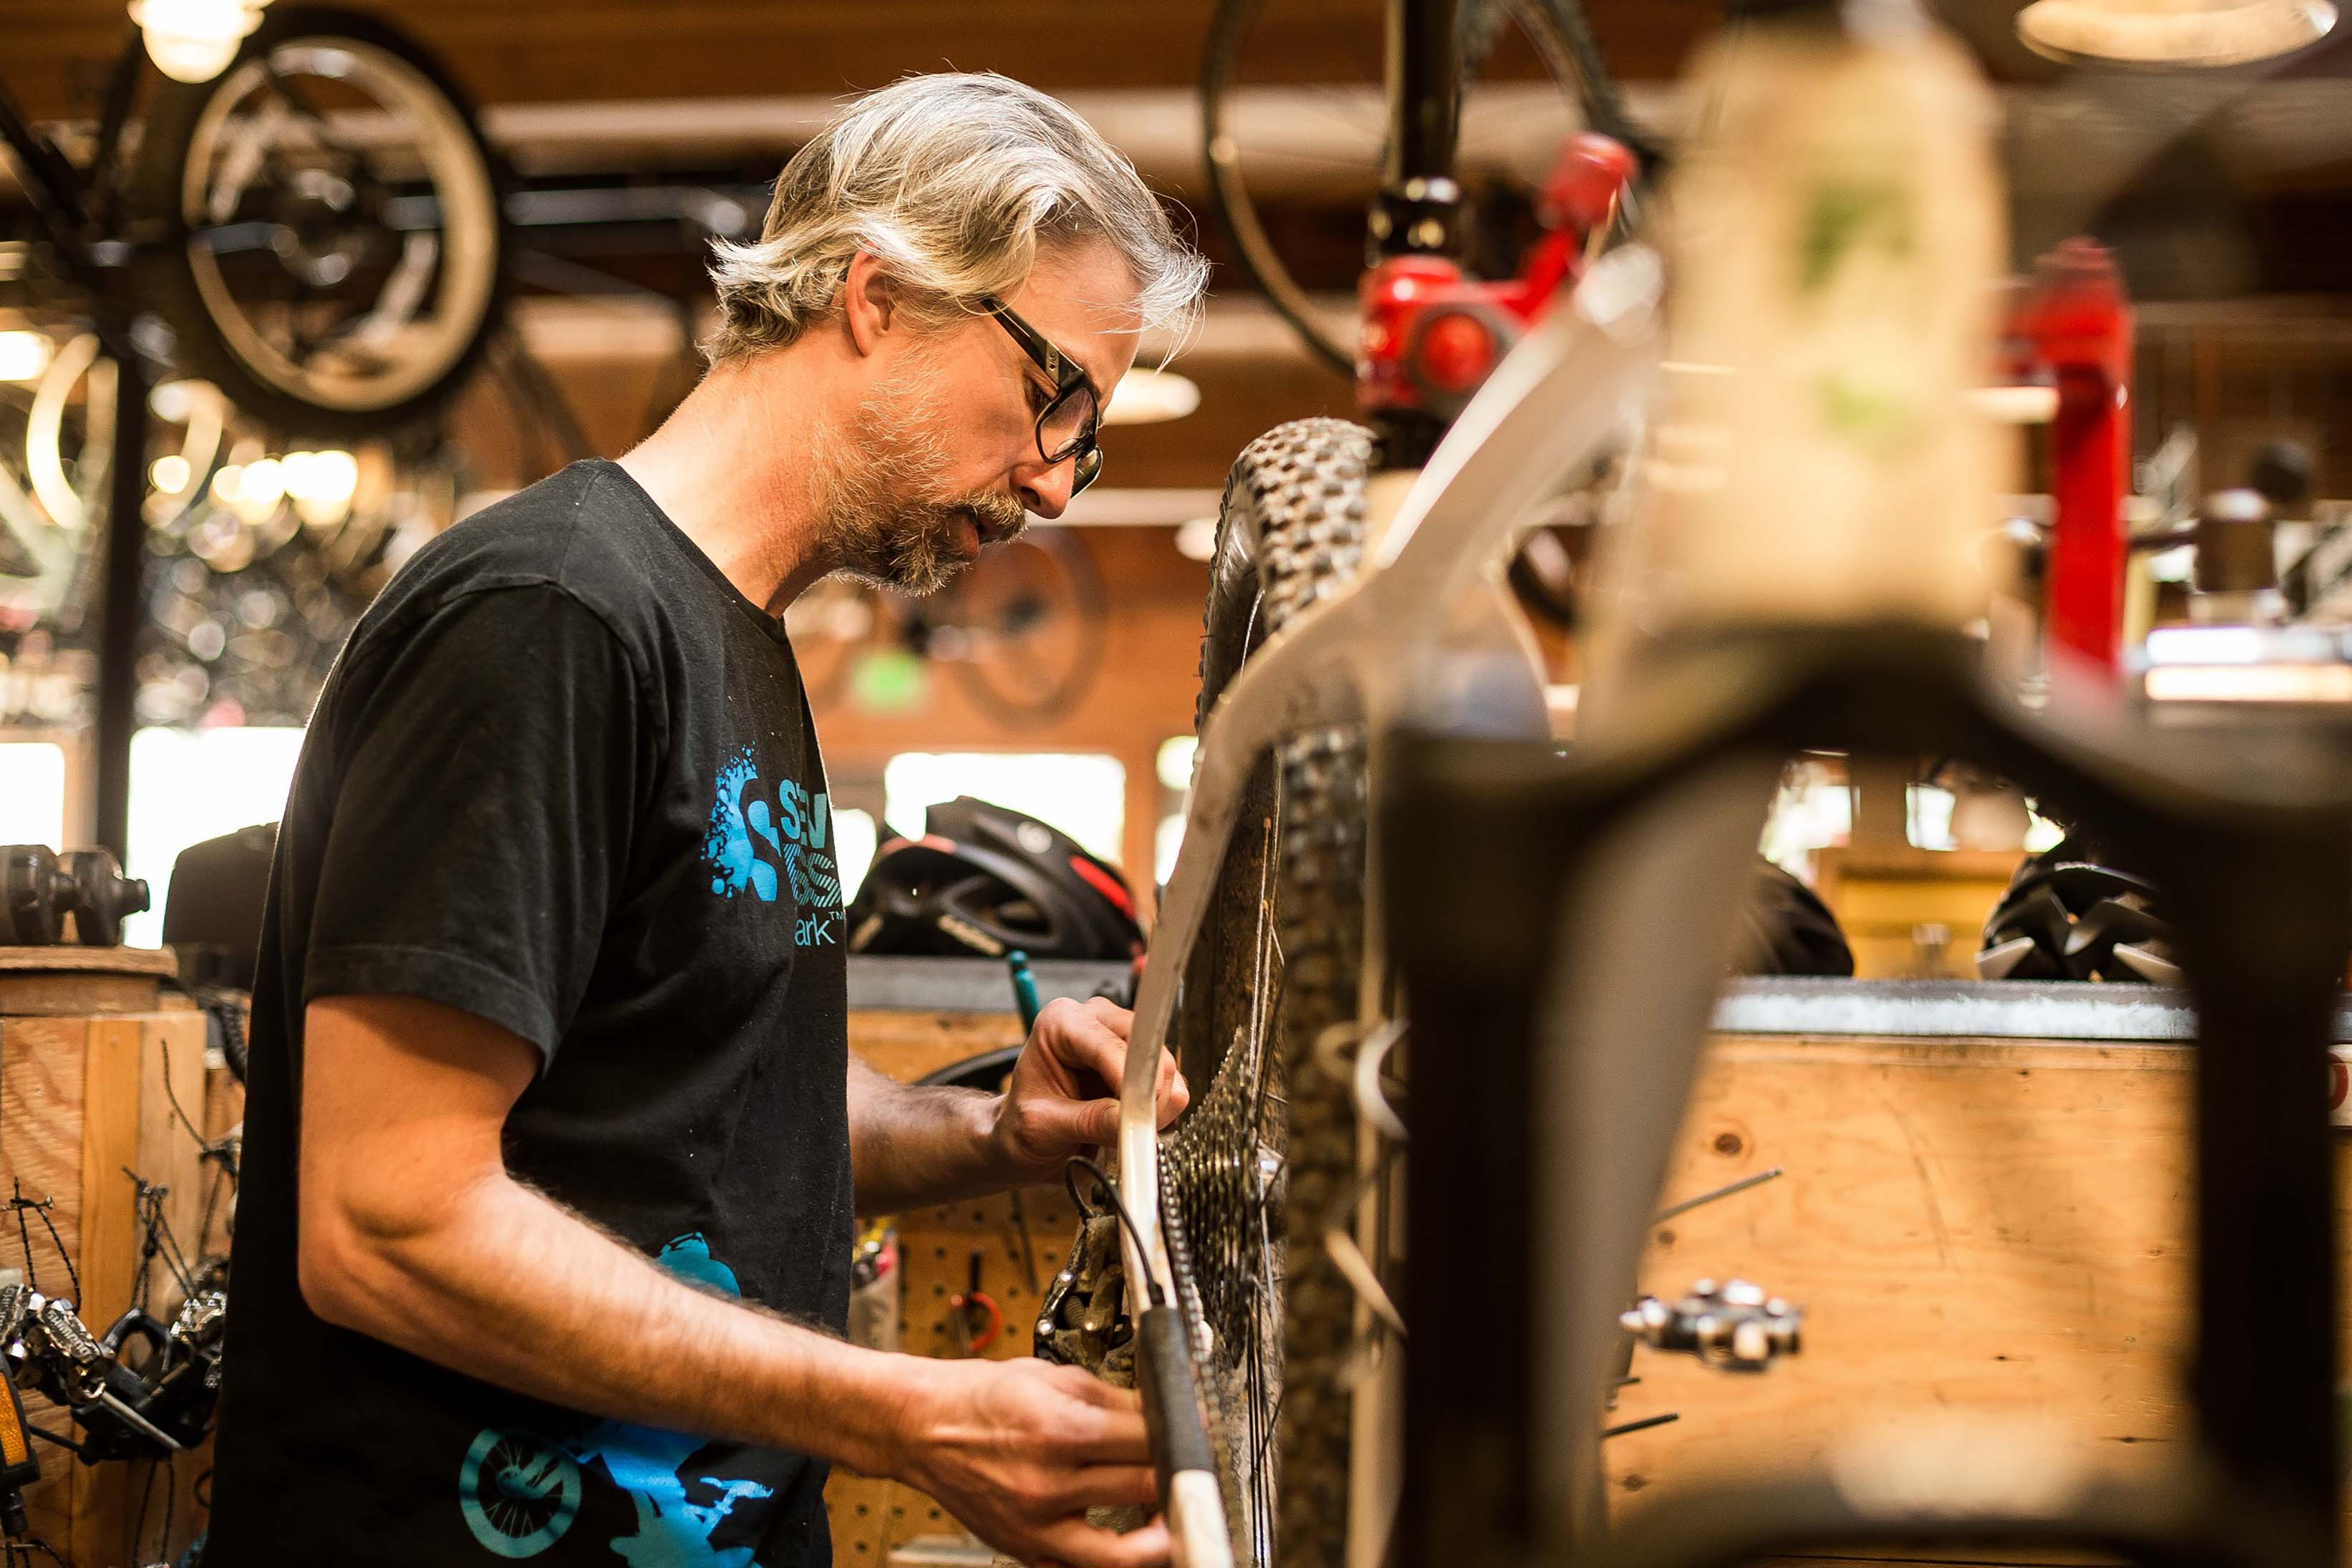 A mechanic on the Montlake Bicycle Shop sales floor working on a mountain bike by checking the chain wear.